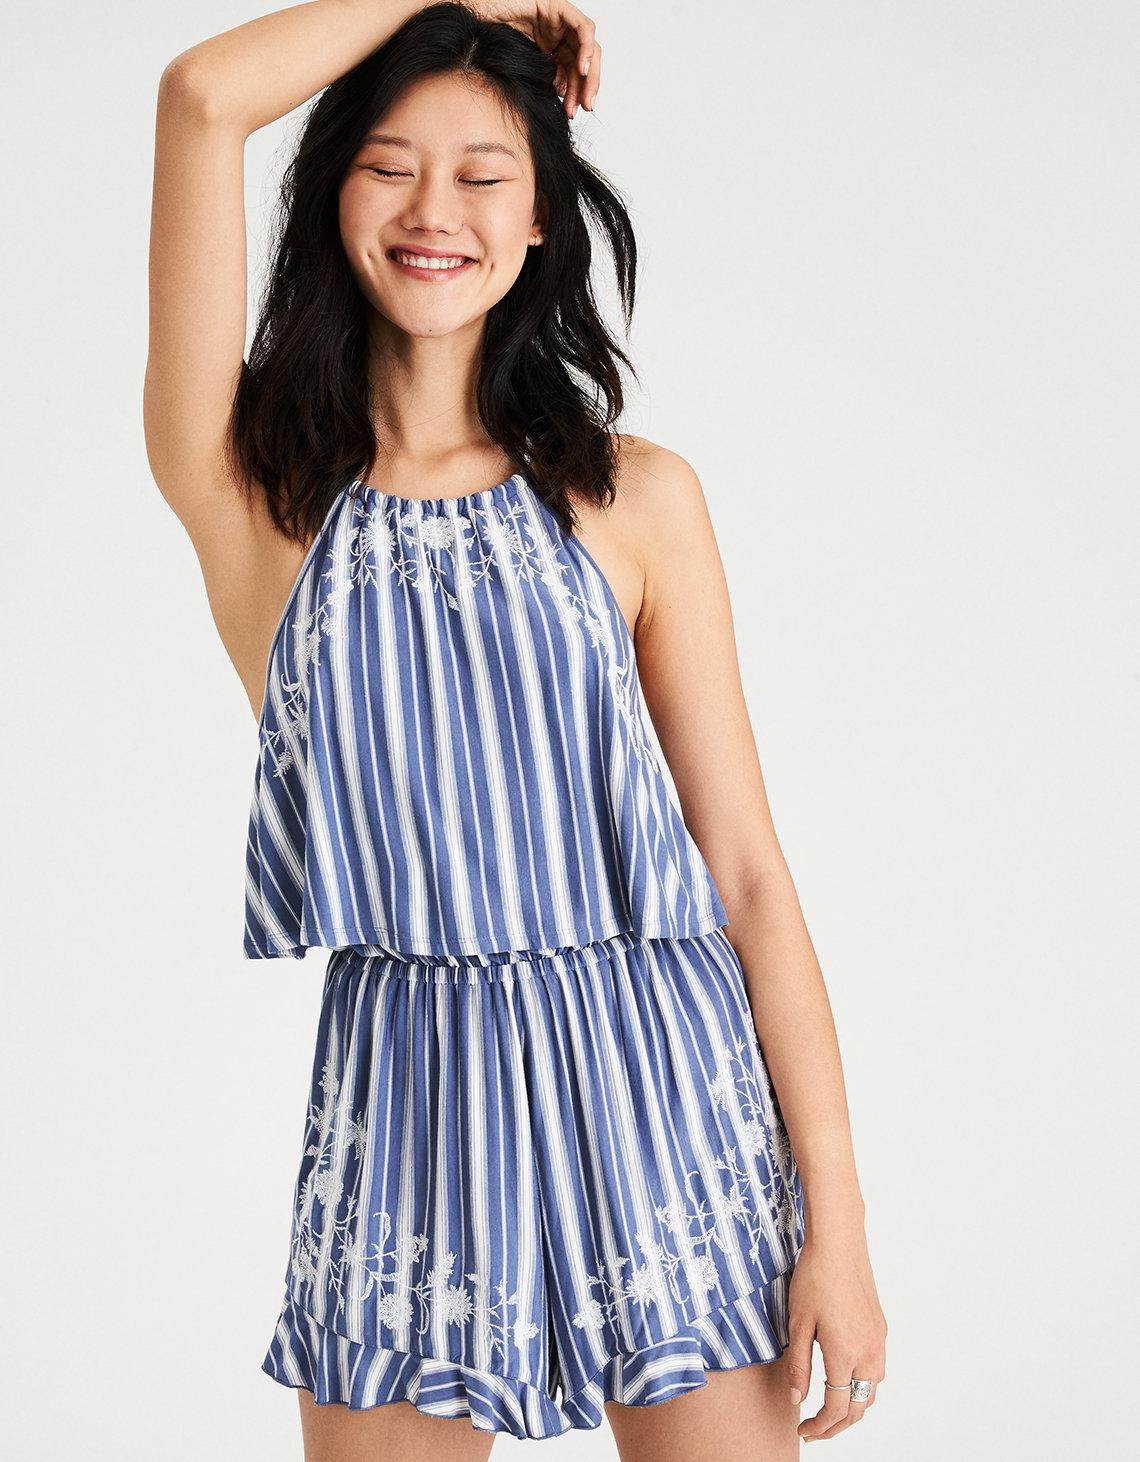 eab579743399 Lyst - American Eagle Ae Knit Embroidered Halter Romper in Blue